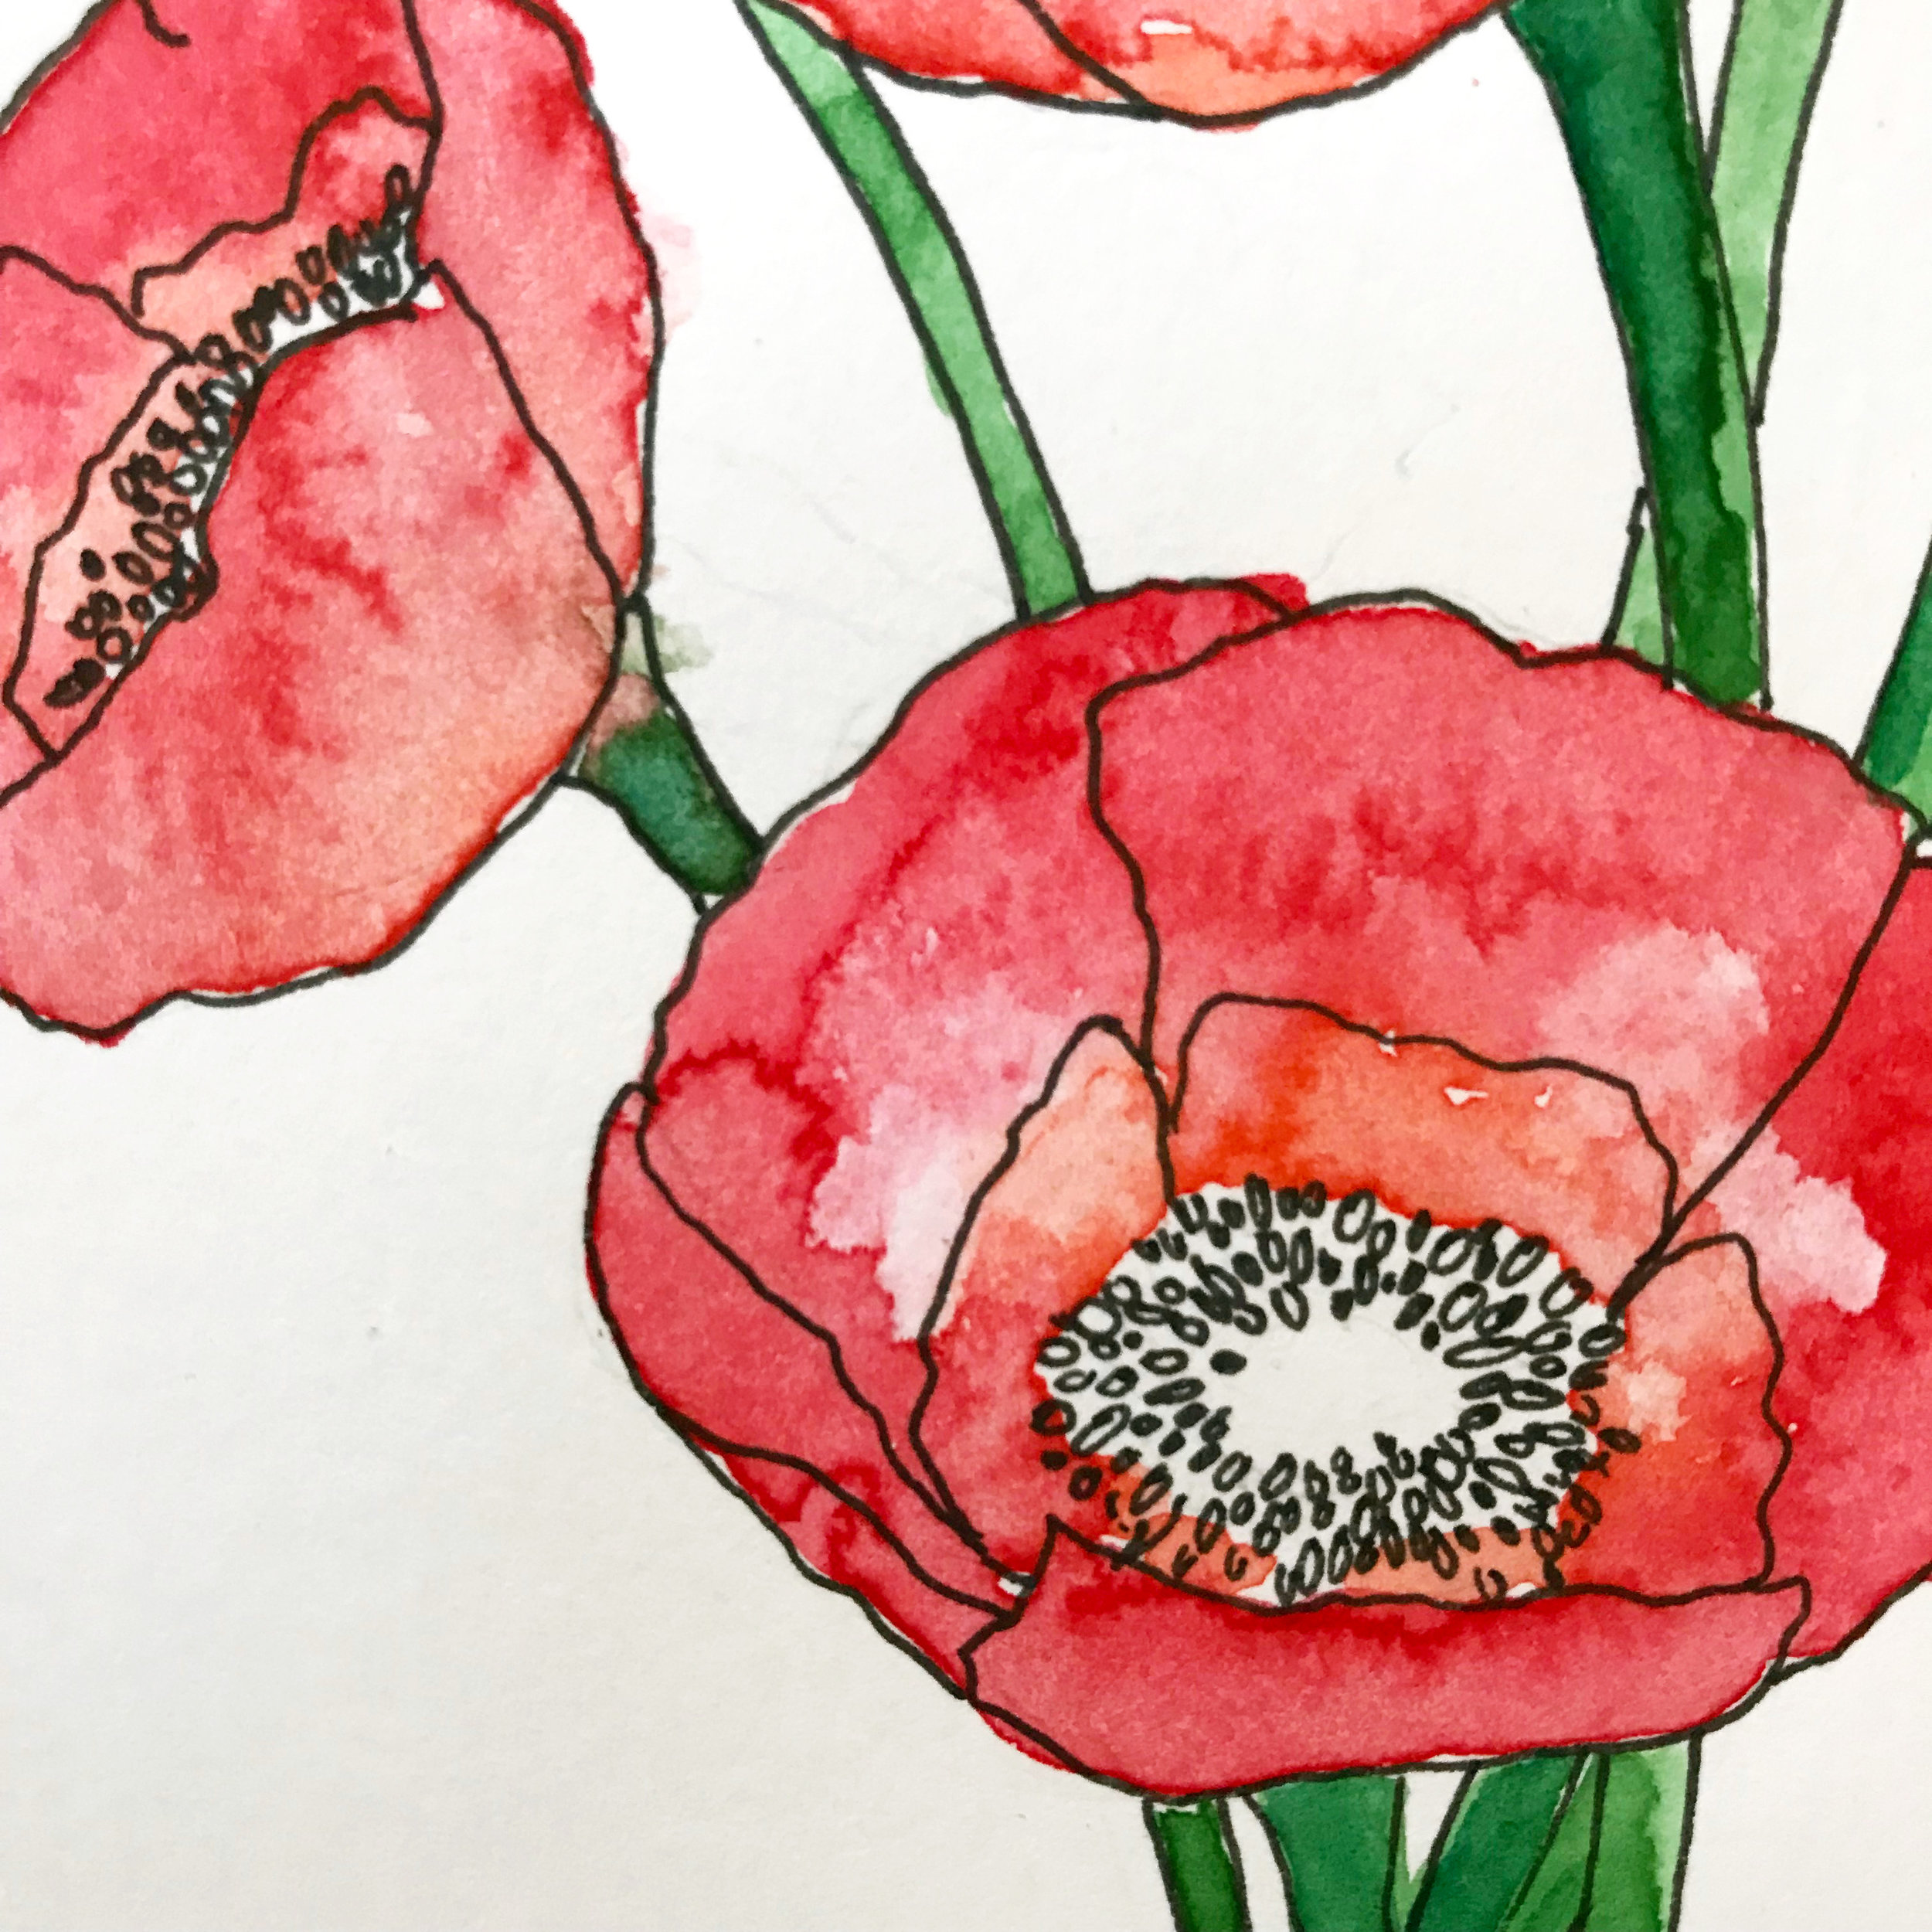 Bristol paper allows for the smoothest illustration using micron pens, but watercolors do not absorb as well using a wash of water which causes the pigment to sit on the surface of the paper.